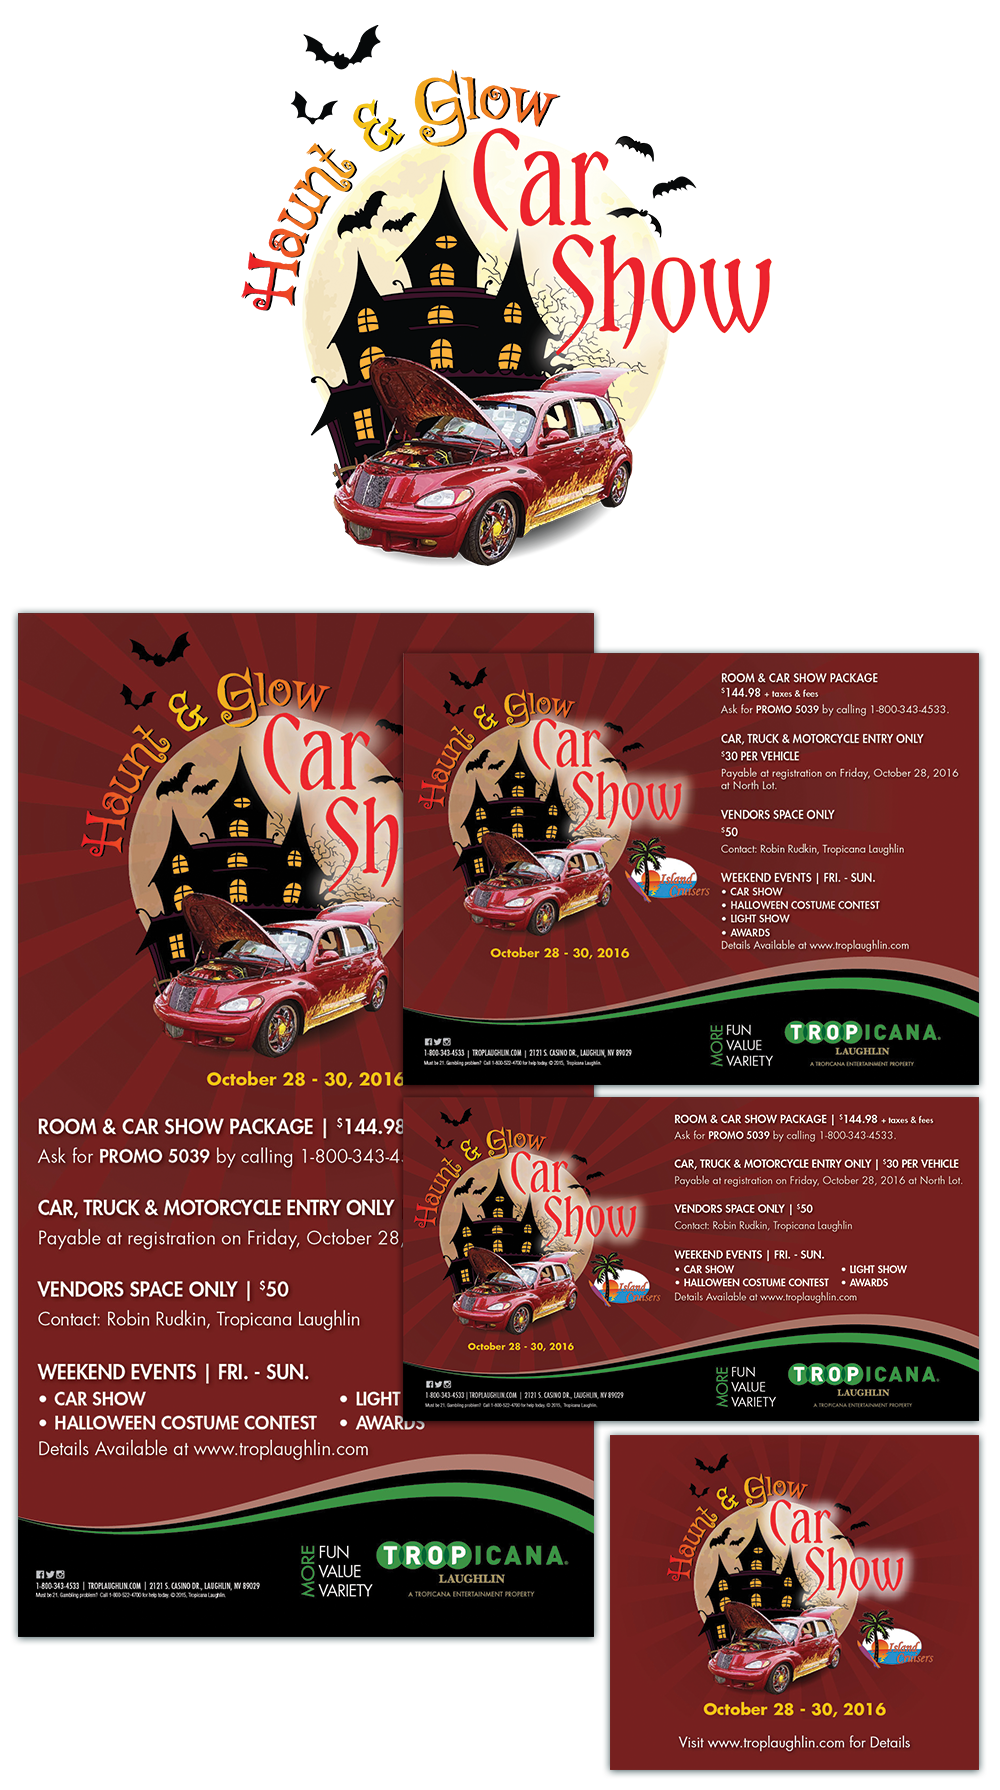 casino event logo design and marketing materials digital billboards